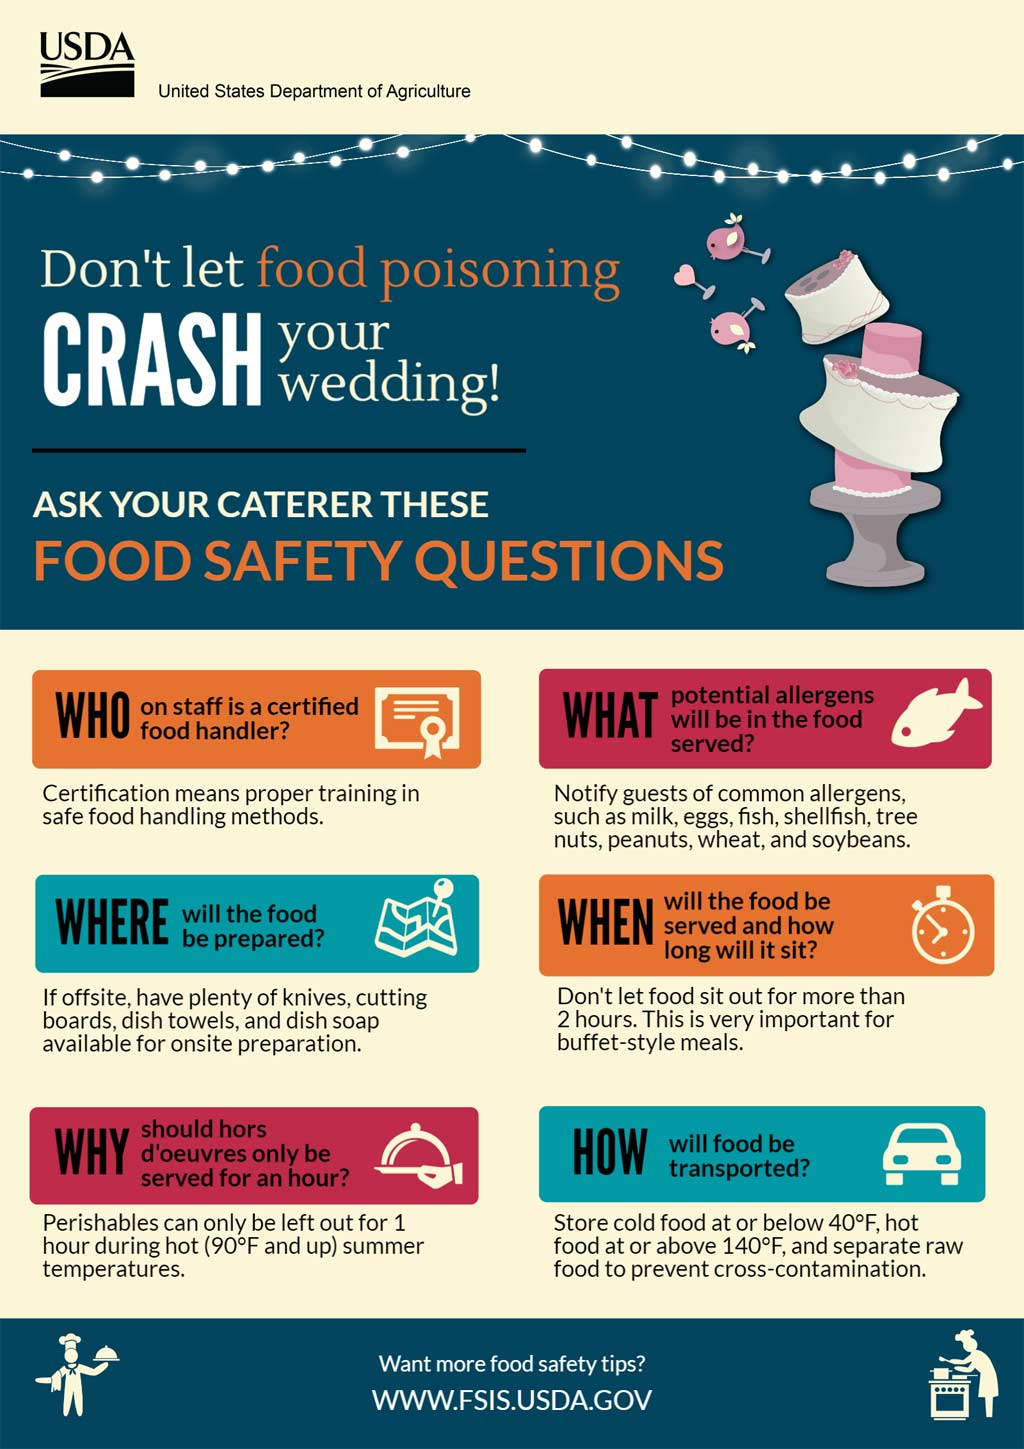 USDA - Wedding Food Safety - Questions to Ask Caterer